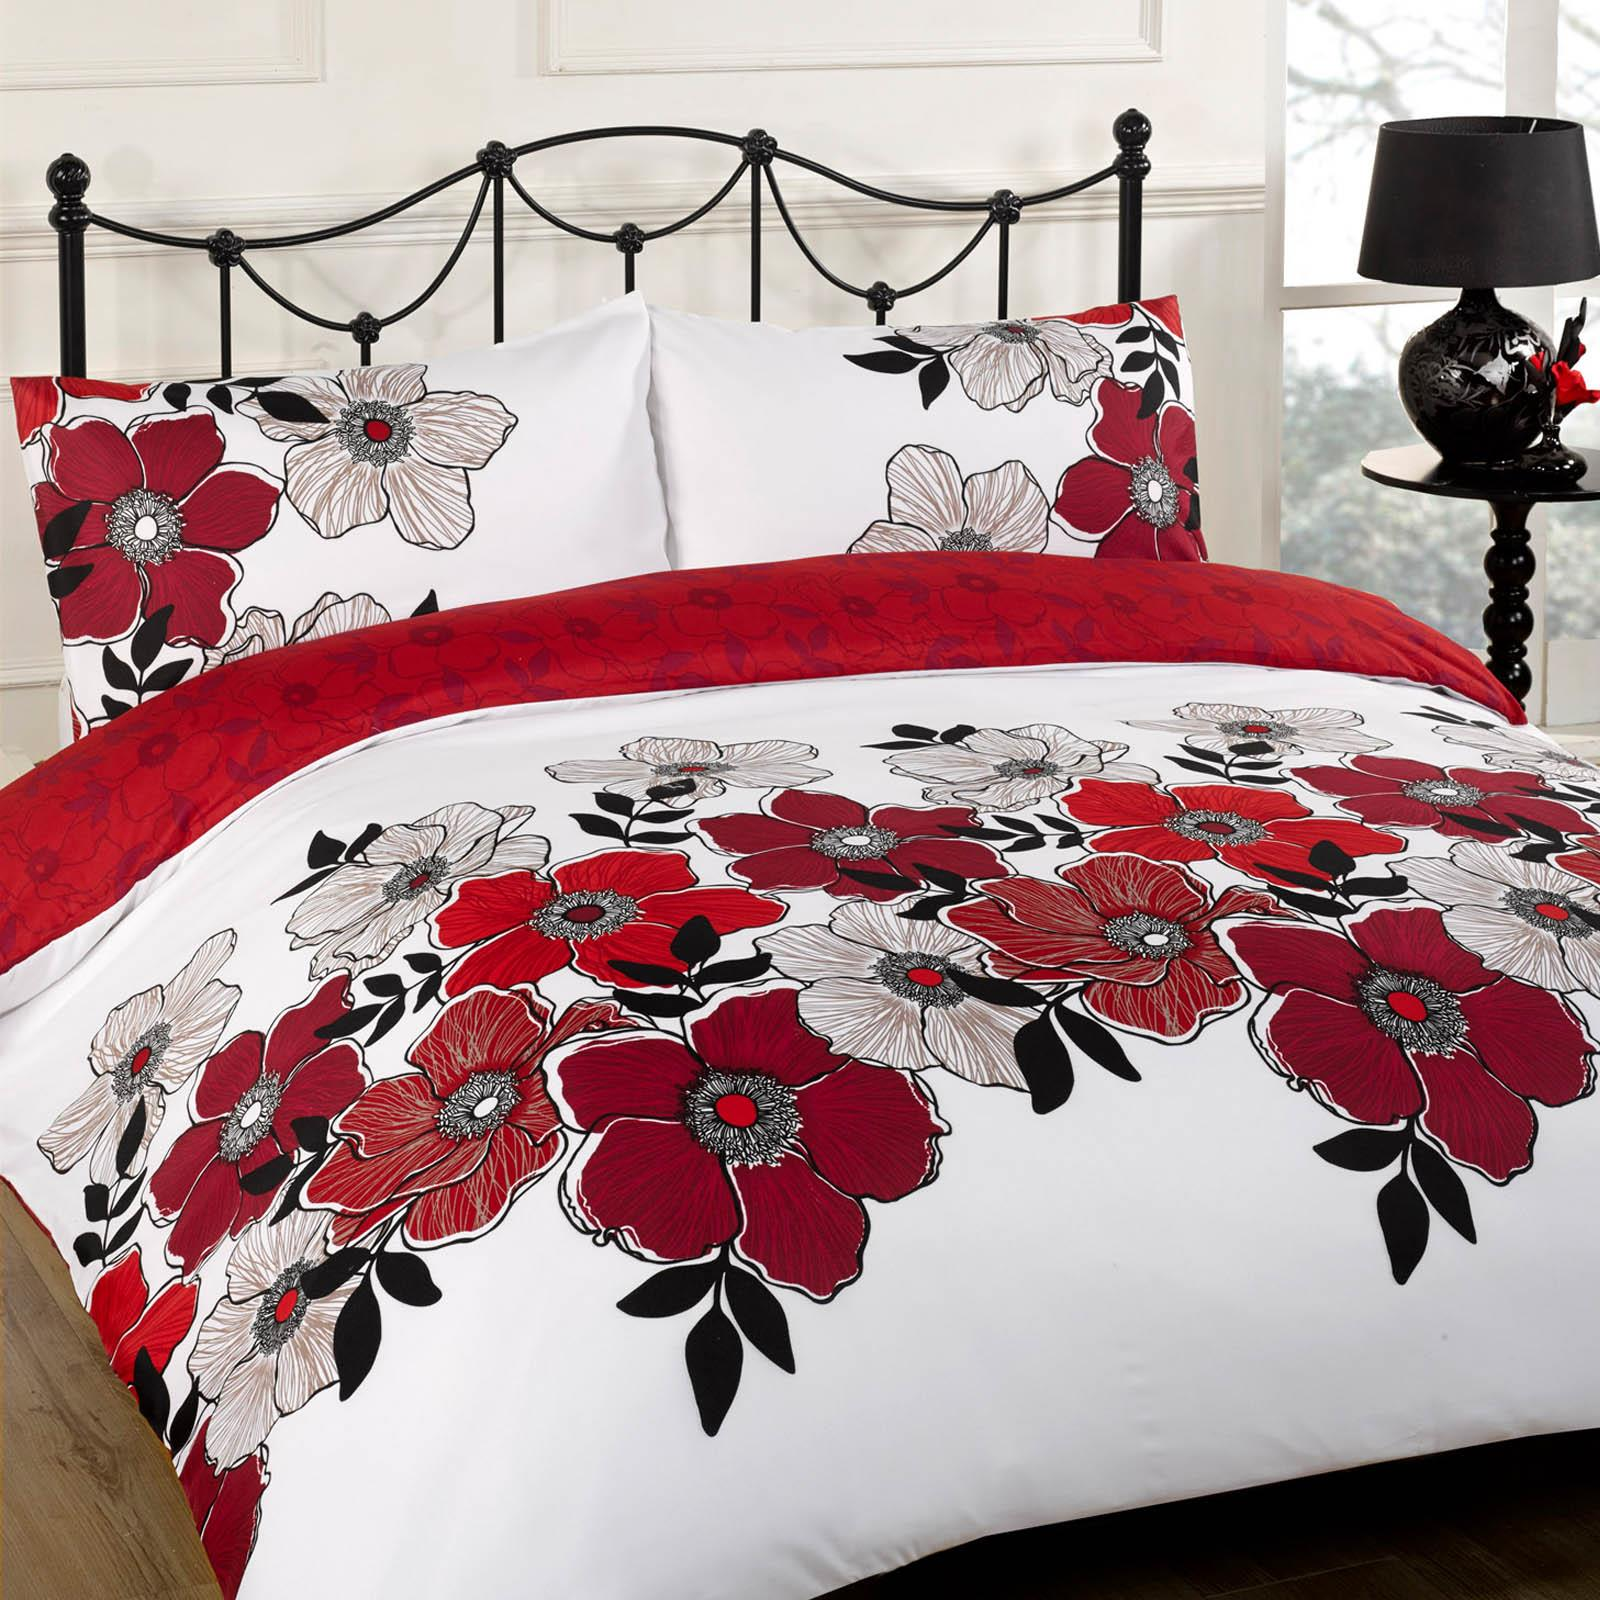 Duvet Cover With Pillow Case Bed Set Pollyanna Red Black Grey Single Double King Ebay